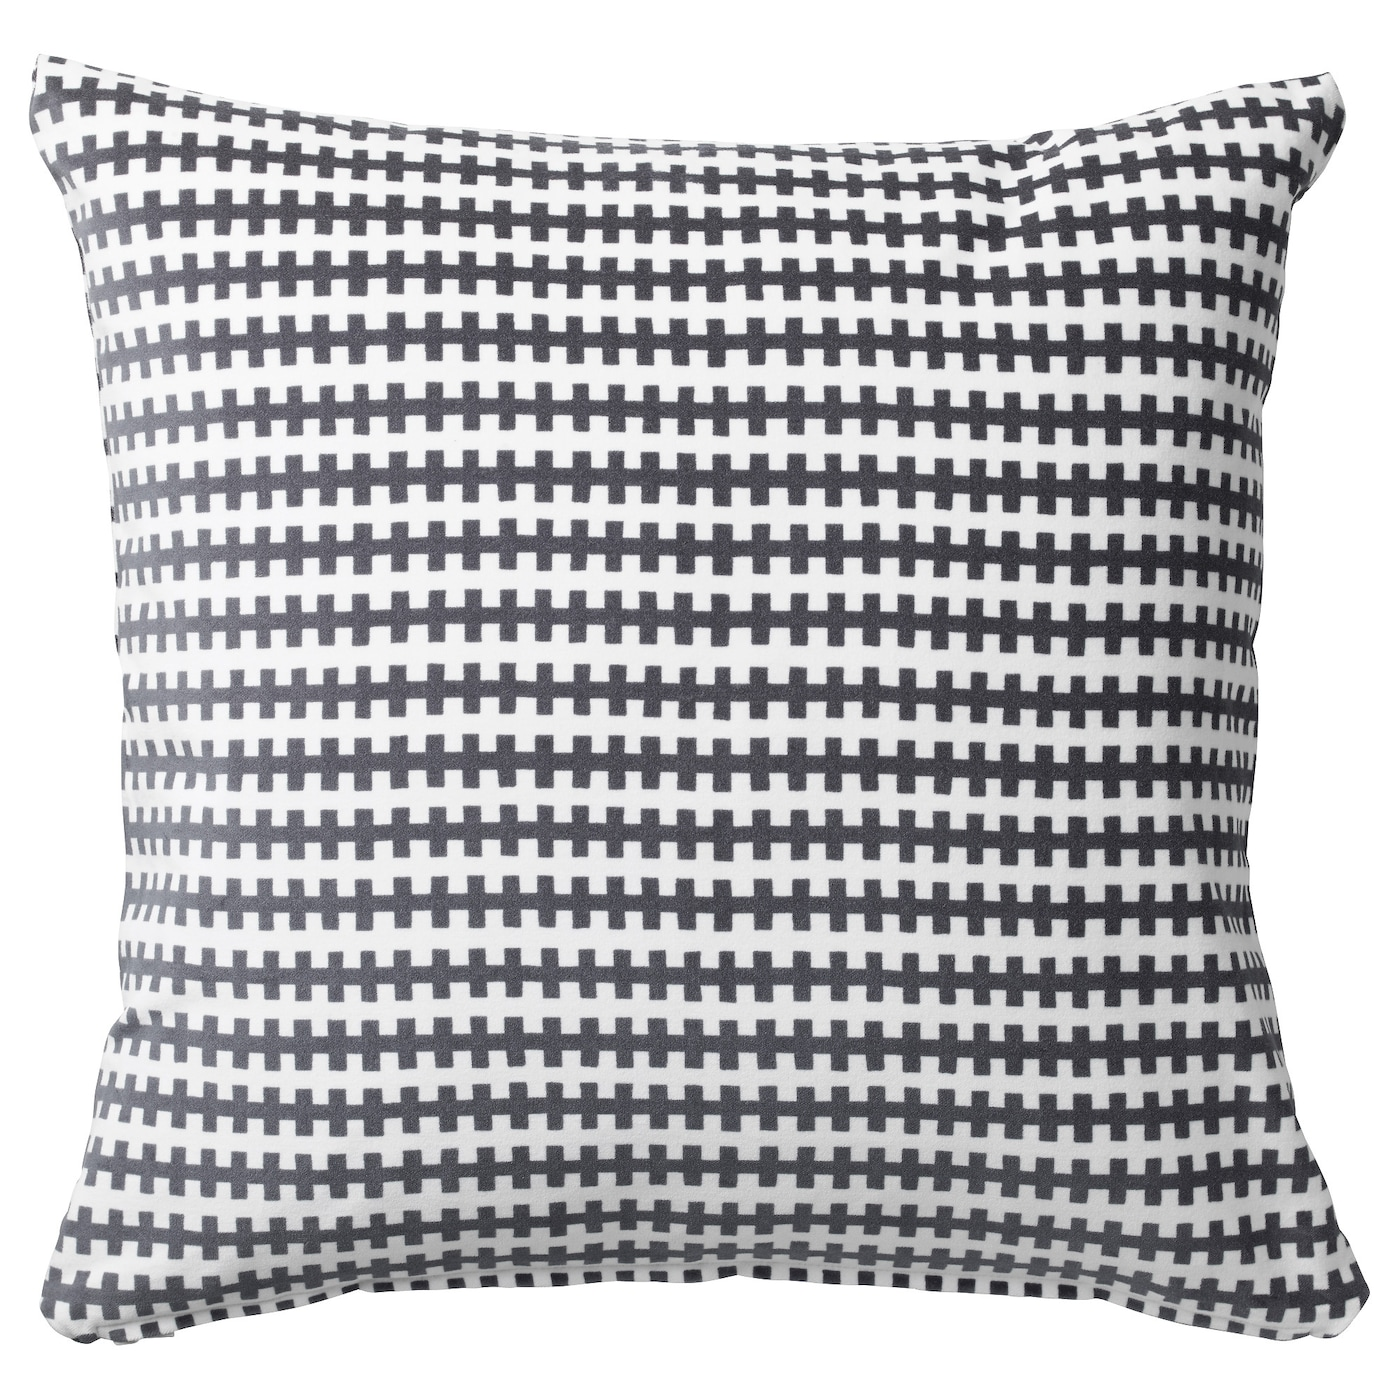 Stockholm 2017 Cushion Striped Grey White 50 X 50 Cm Ikea